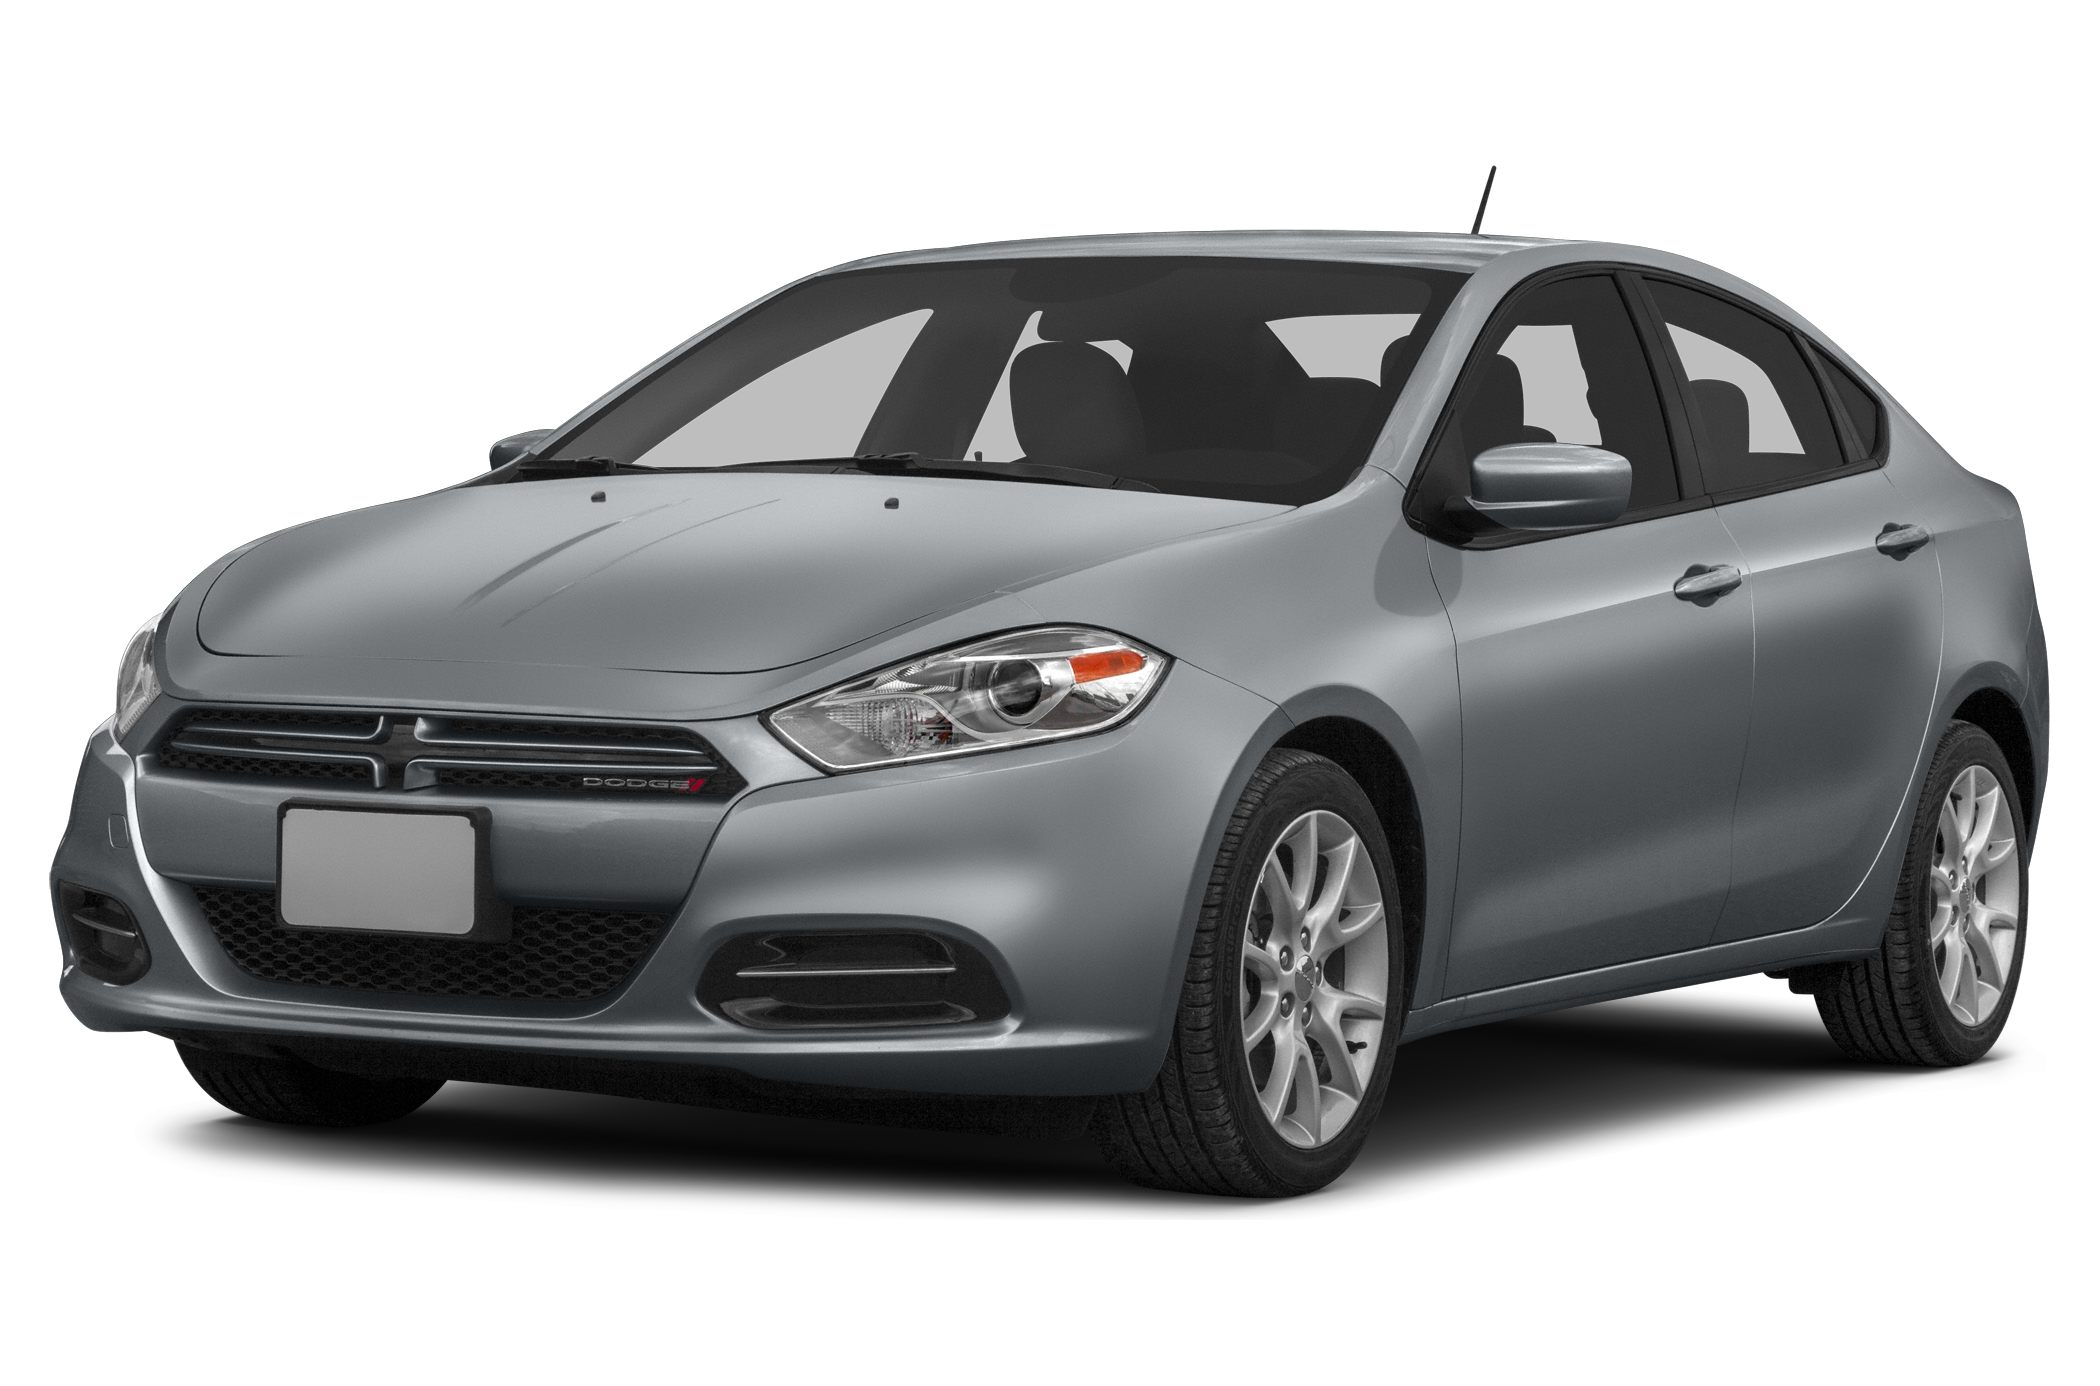 2015 Dodge Dart SXT Sedan for sale in Eastland for $0 with 0 miles